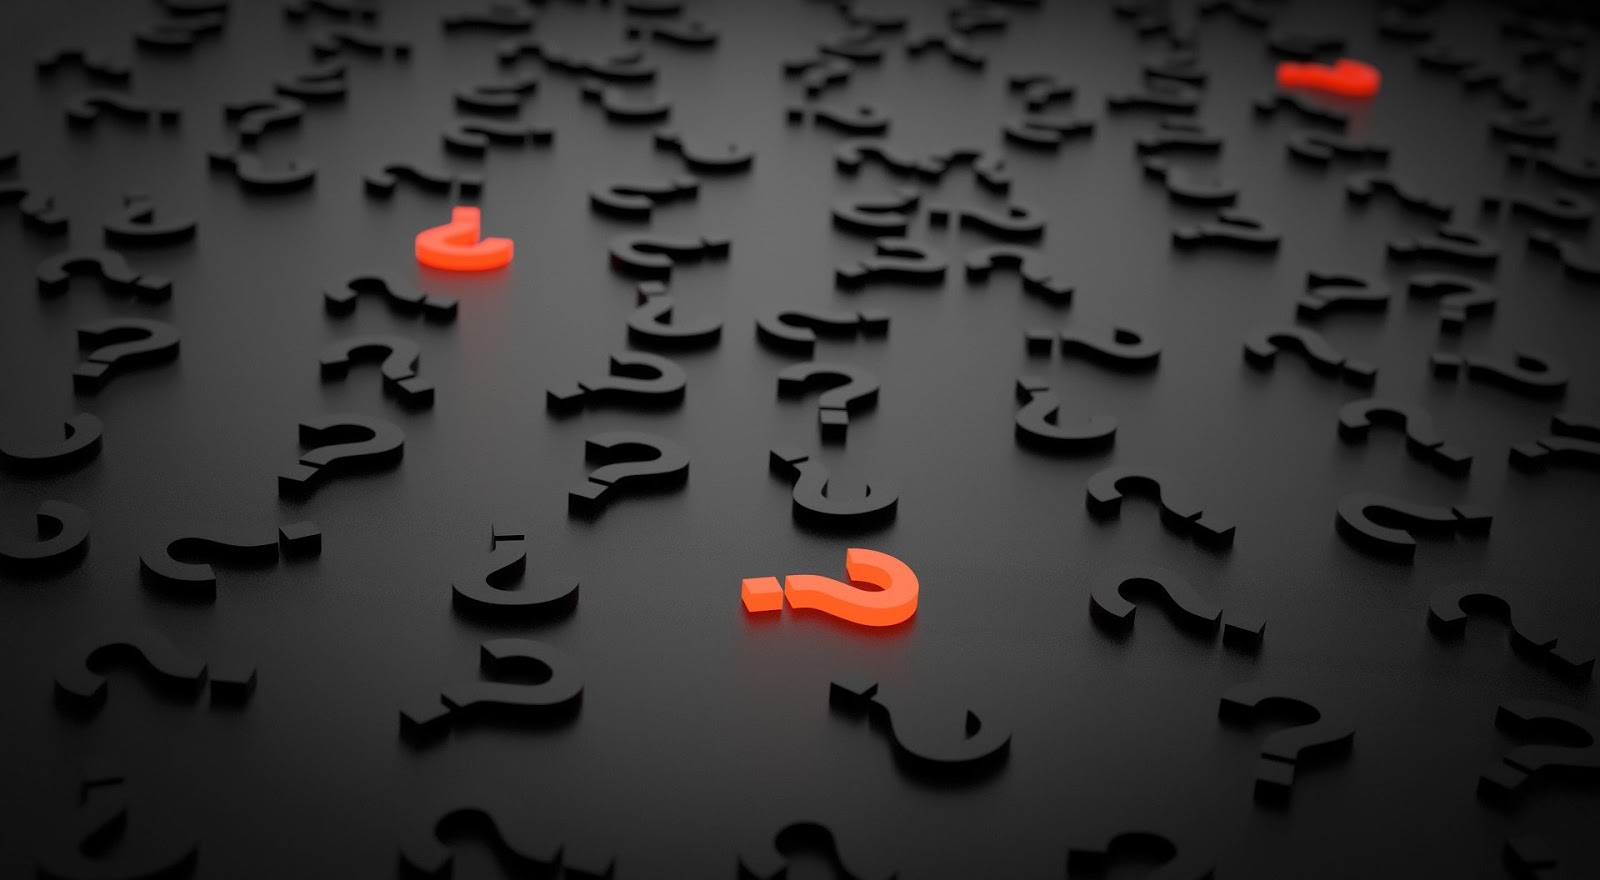 black-and-orange-question-marks-on-a-dark-grey-surface-graphic